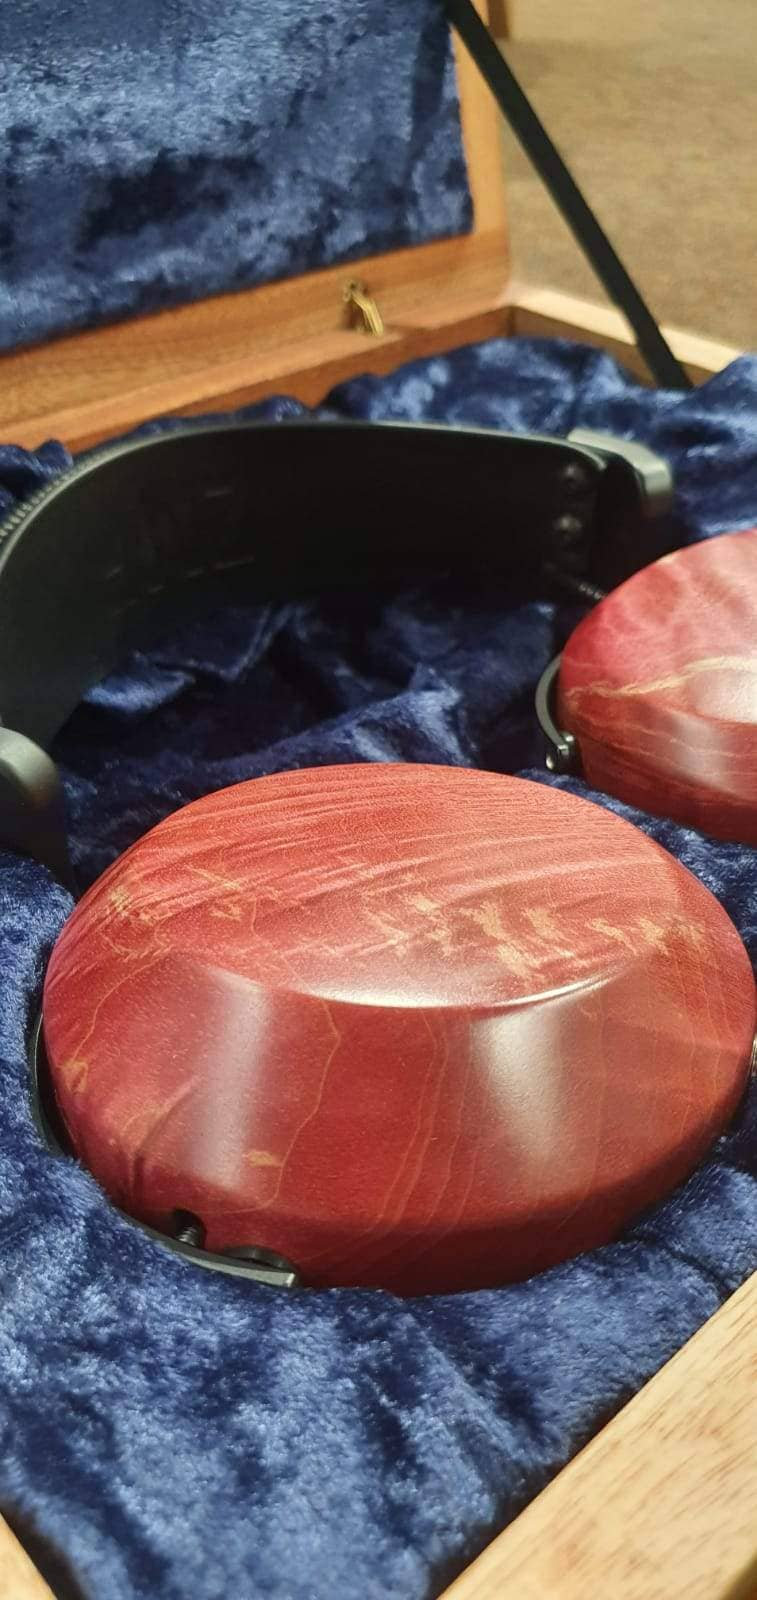 ZMF Vérité Closed Stabilized Maple Burl